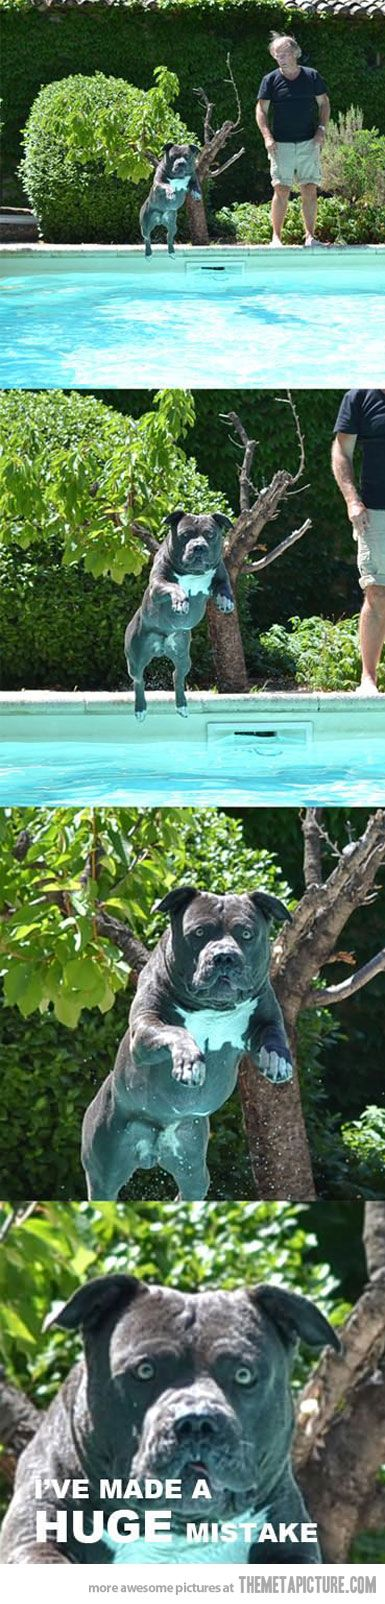 Jump in the pool, they said…LOL WAY TOO FUNNY